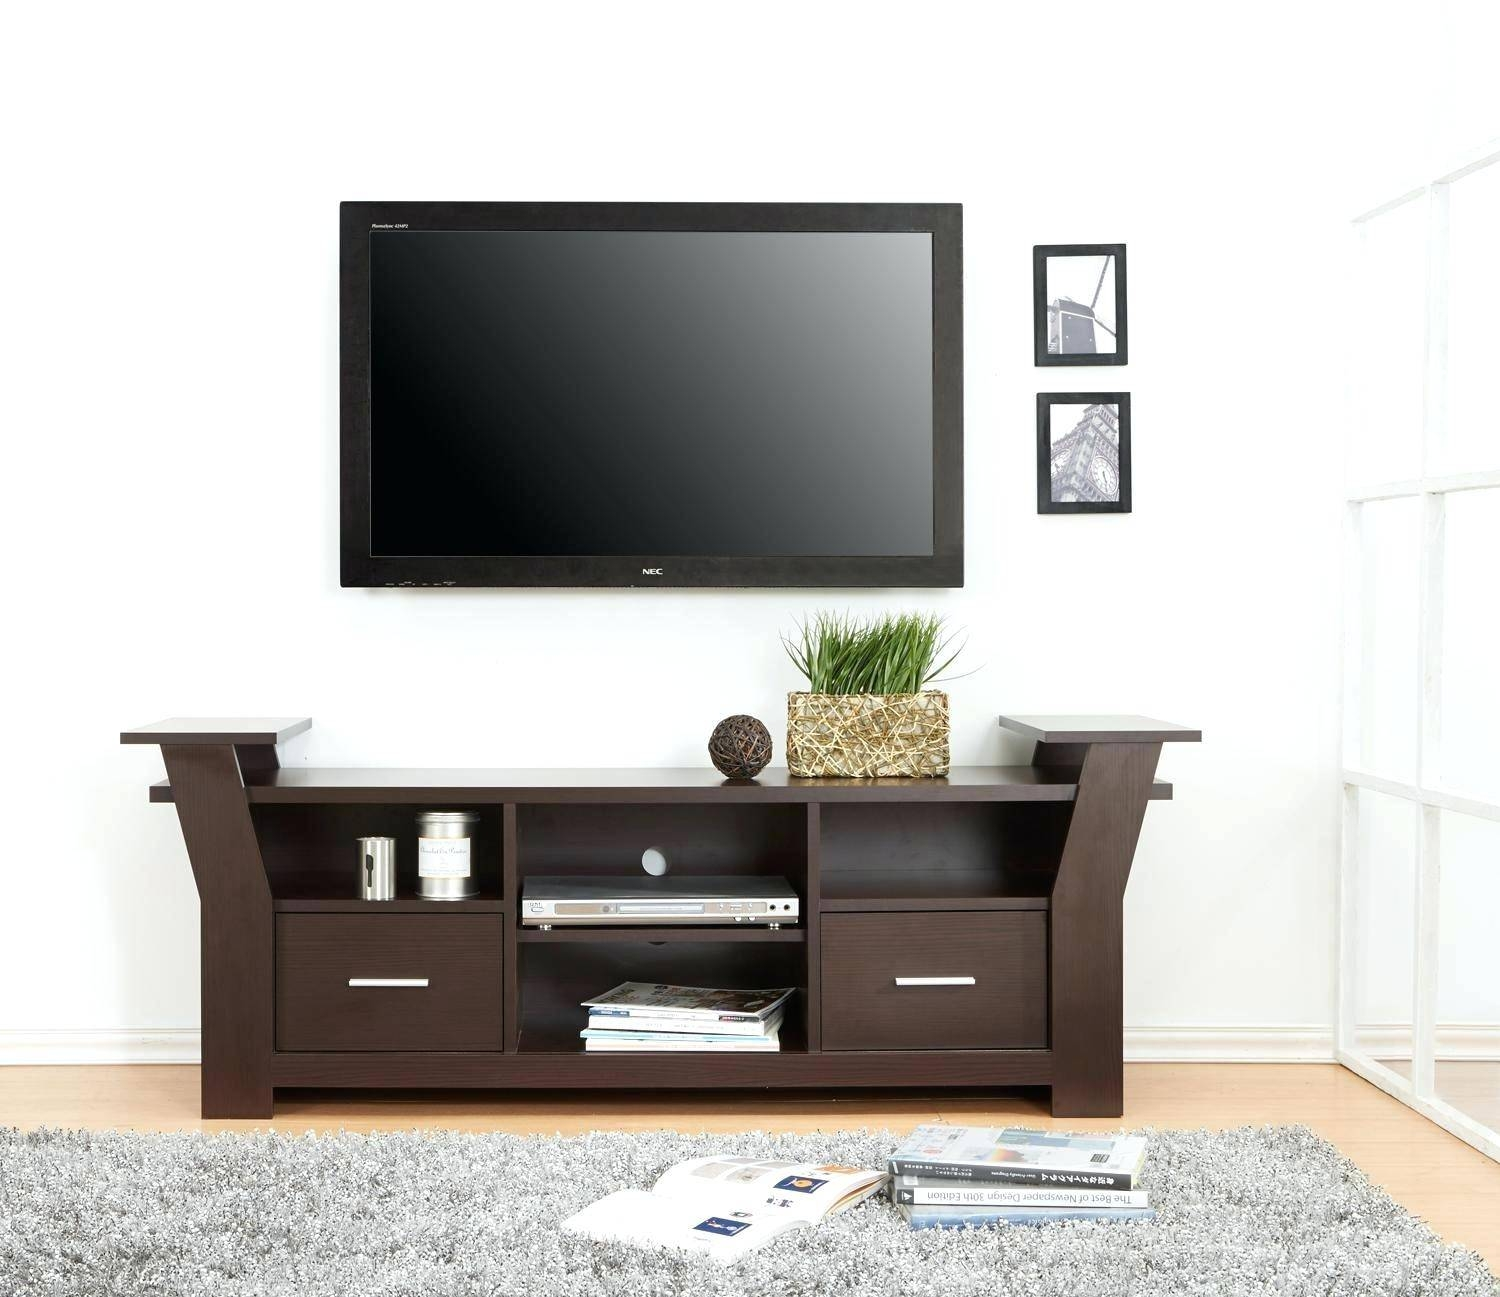 Tv Stand: Amazing Tv Stand With Storage Design (View 7 of 15)